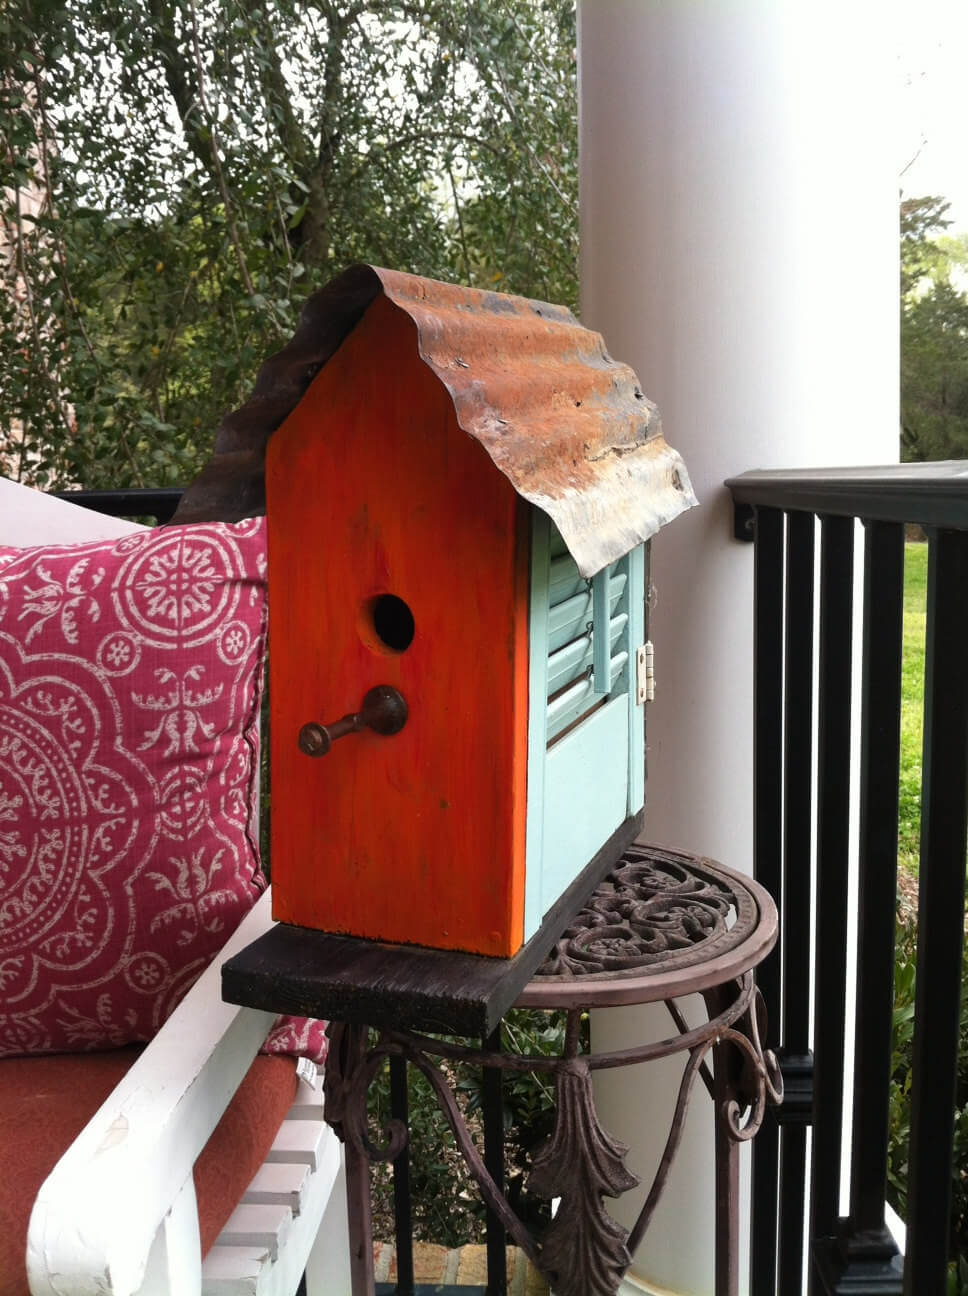 Build This Cute Shutter Birdhouse